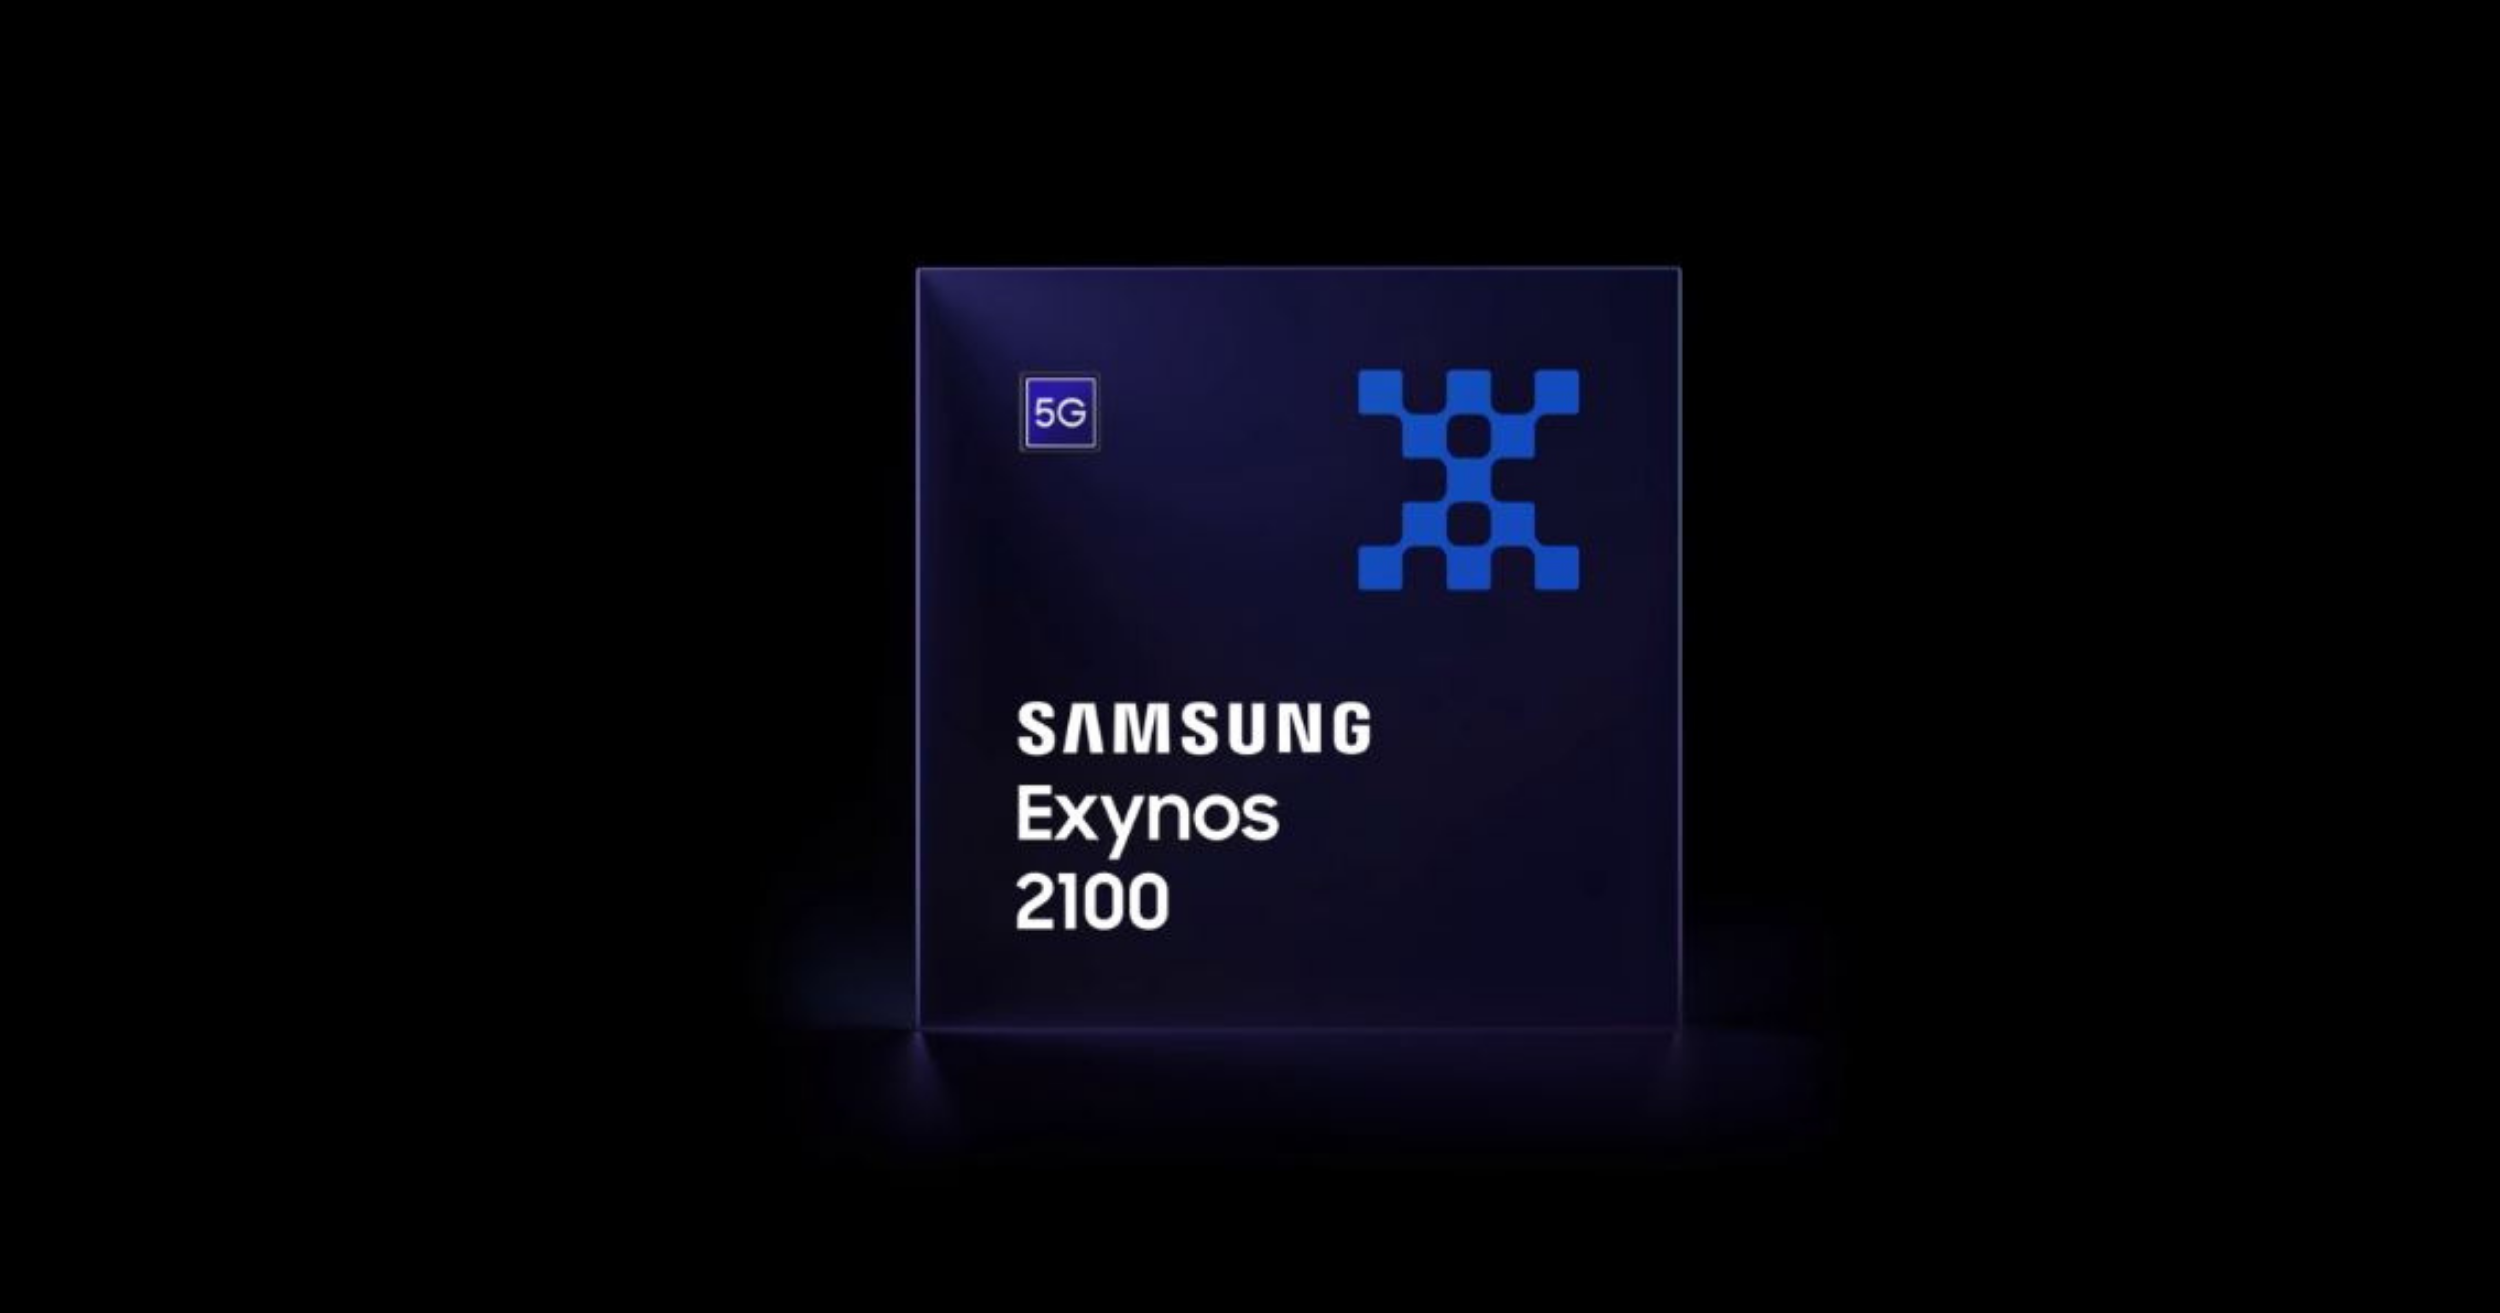 6-exciting-features-of-samsung-exynos-2100